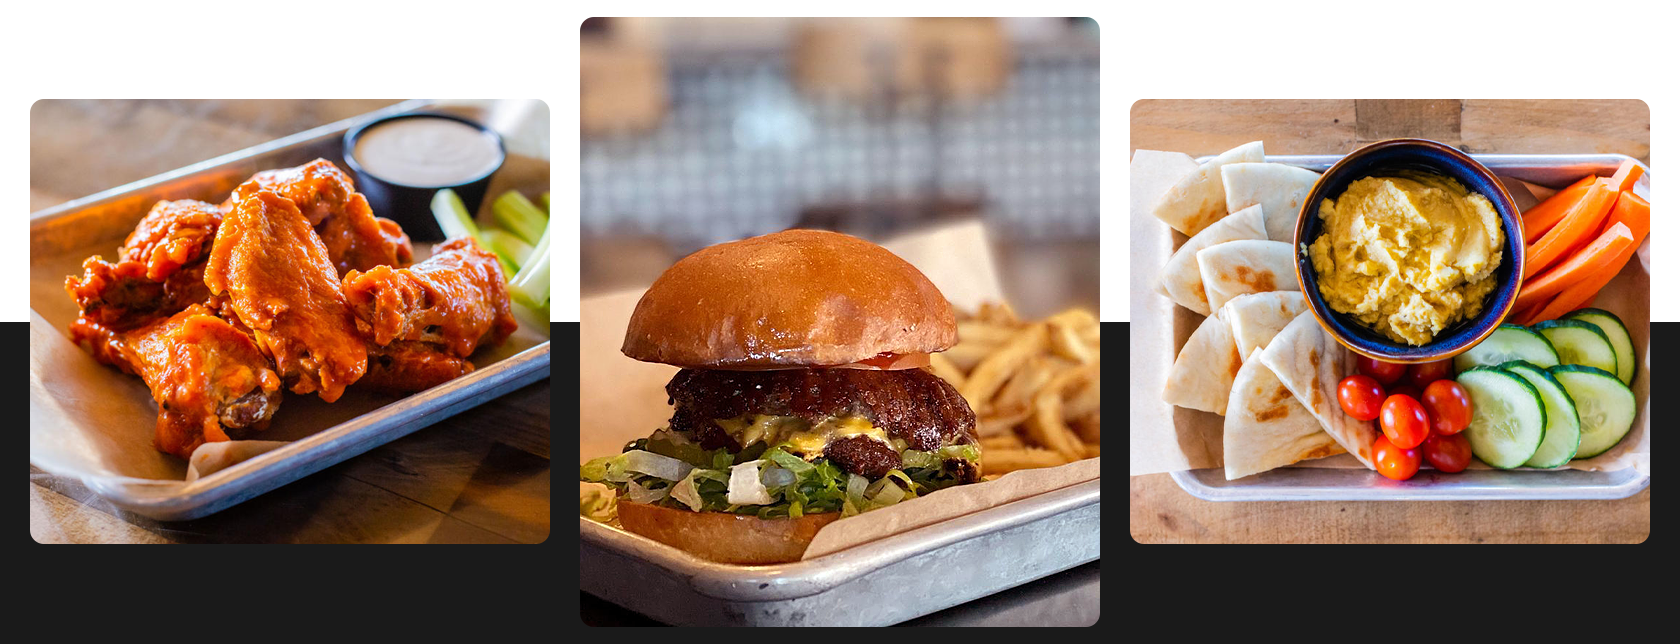 photos of Finley's food featuring wings, a hamburger with fries and a hummus platter with pita